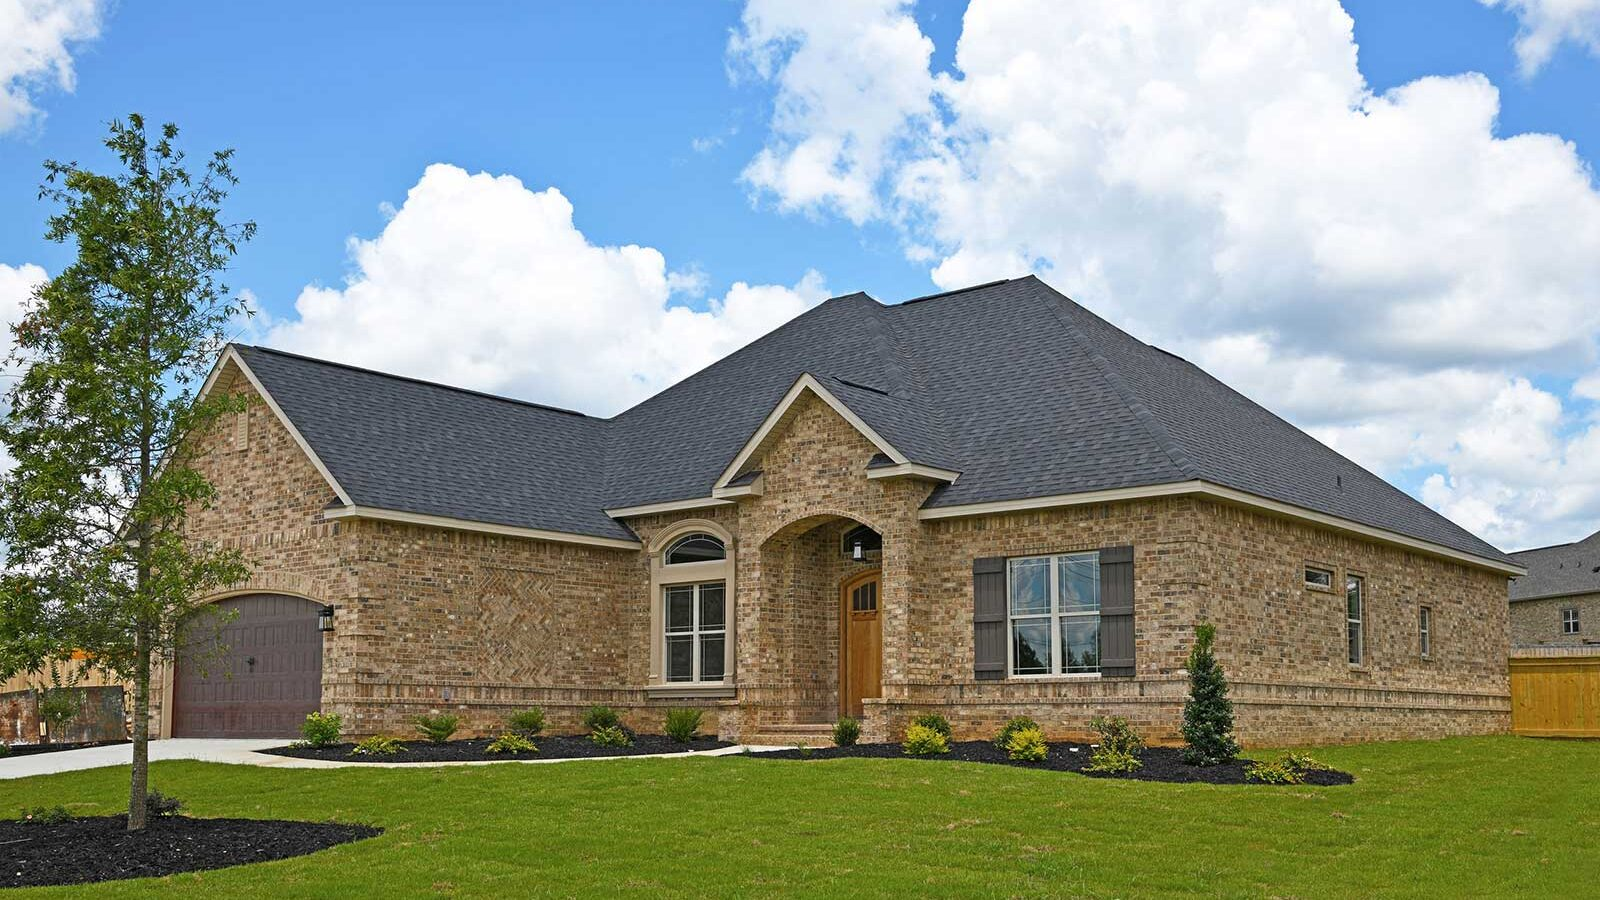 Ranch Style Homes for Sale in Roswell, GA